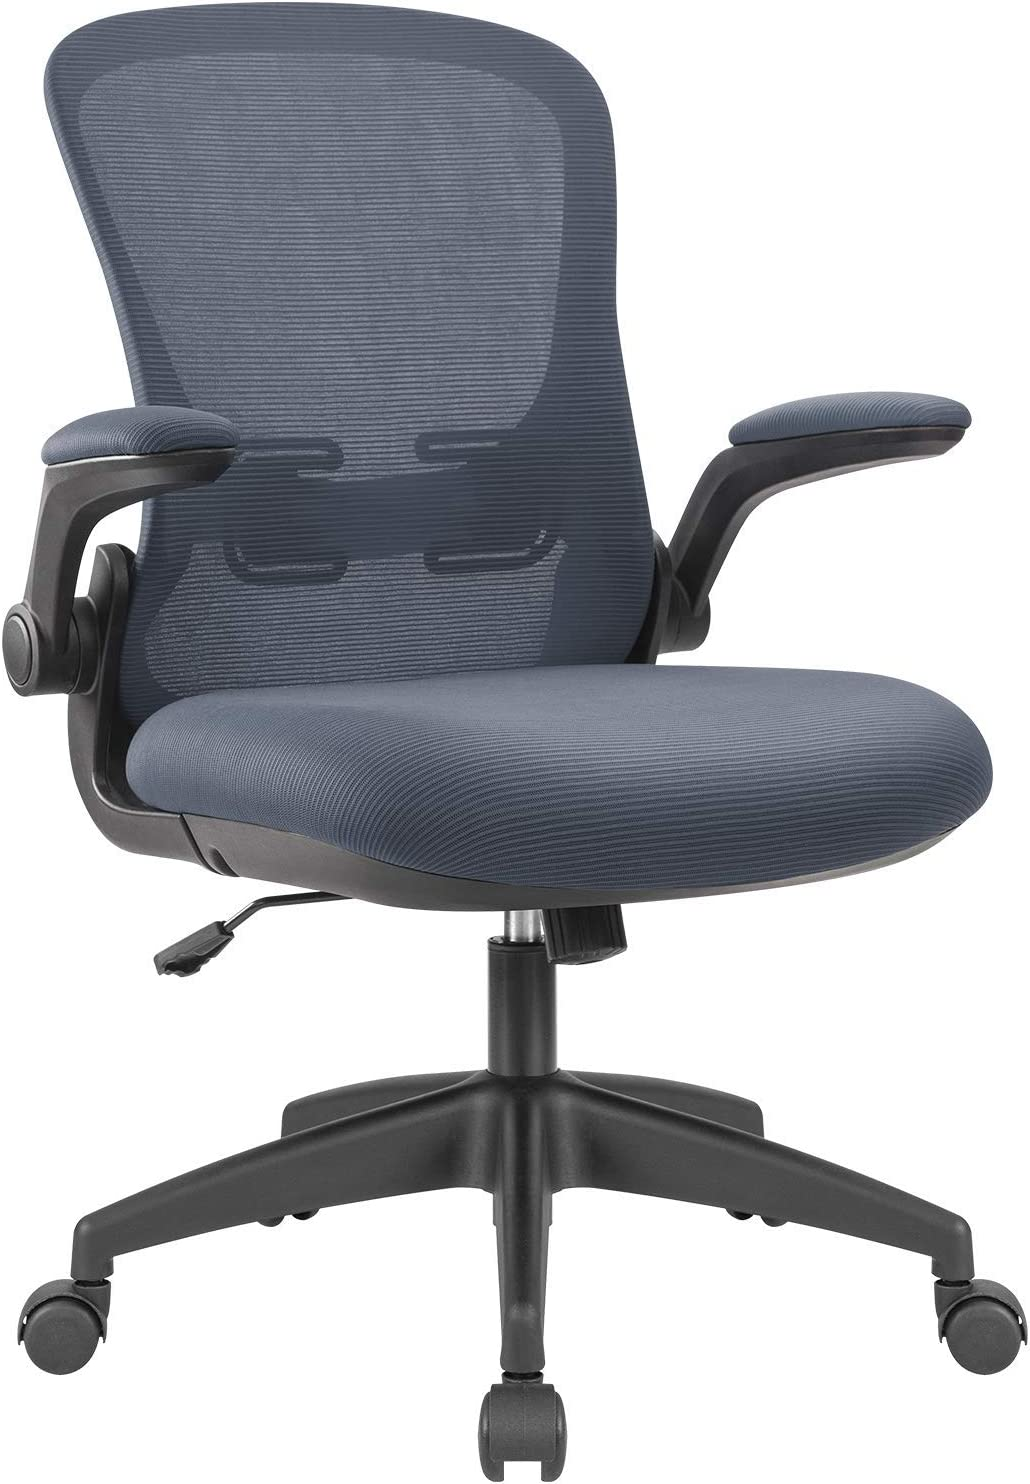 Devoko Office Desk Chair Ergonomic Mesh Chair Lumbar Support with Flip-up Arms and Adjustable Height (Grey)